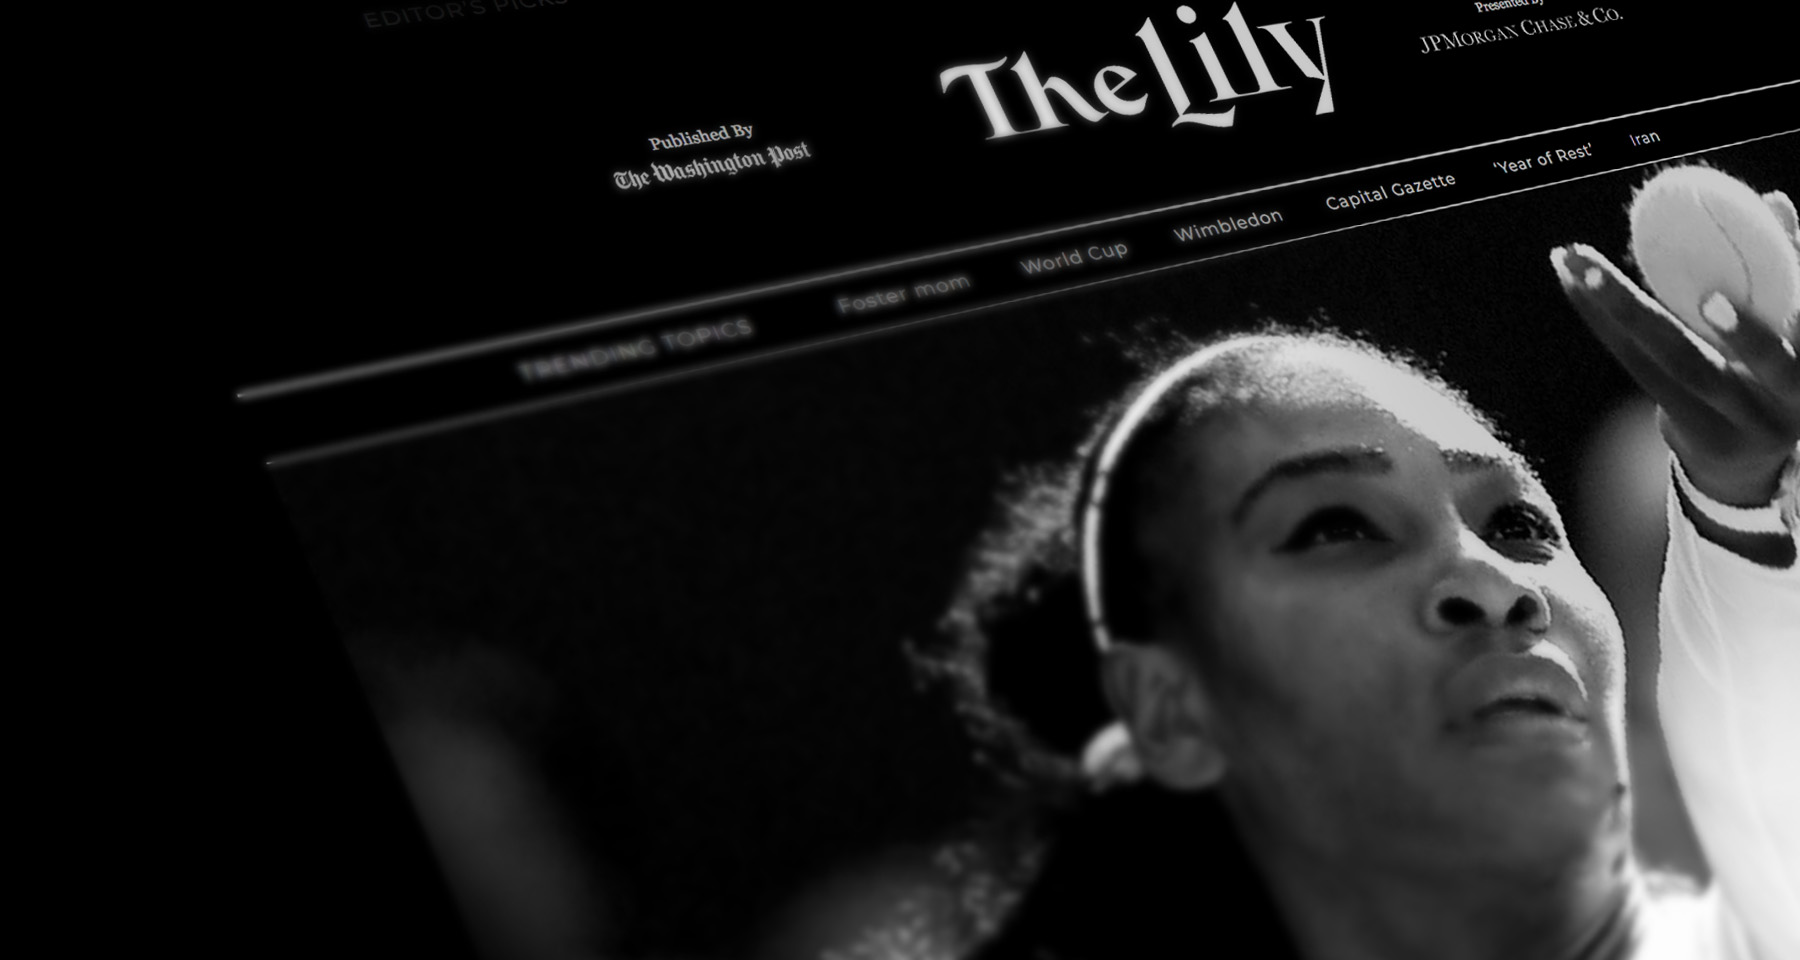 How The Lily is reaching Millennial women with a strong brand built for its audience